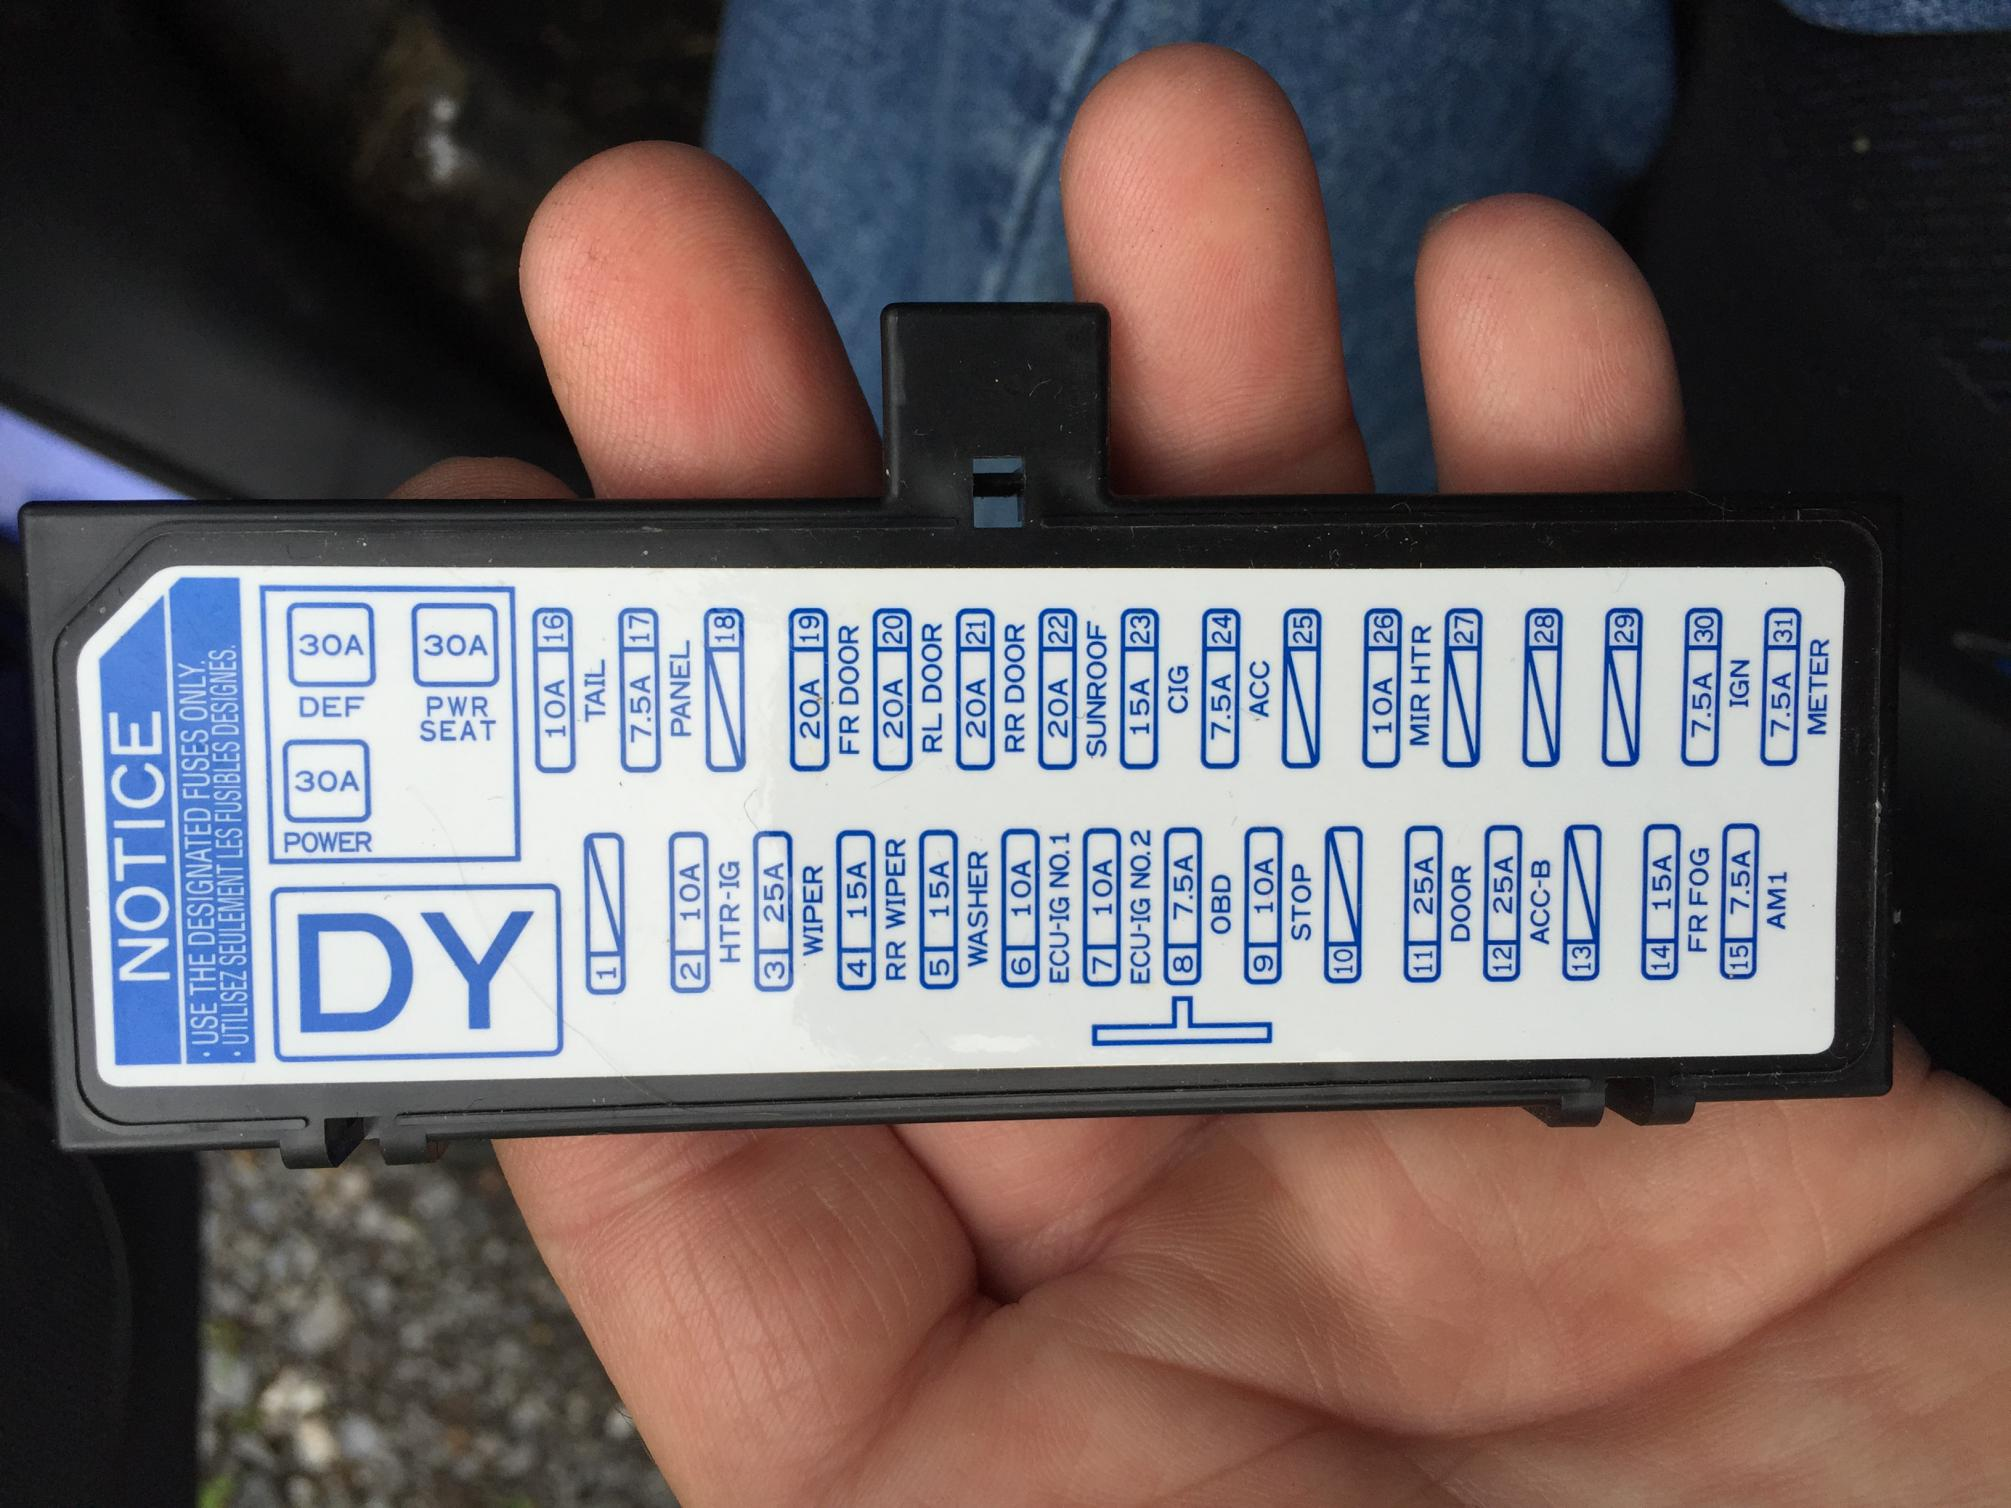 61858d1469362801 fuse location cigarette lighter image fuse location for cigarette lighter? scion xb forum scion xb 2005 fuse box diagram at reclaimingppi.co